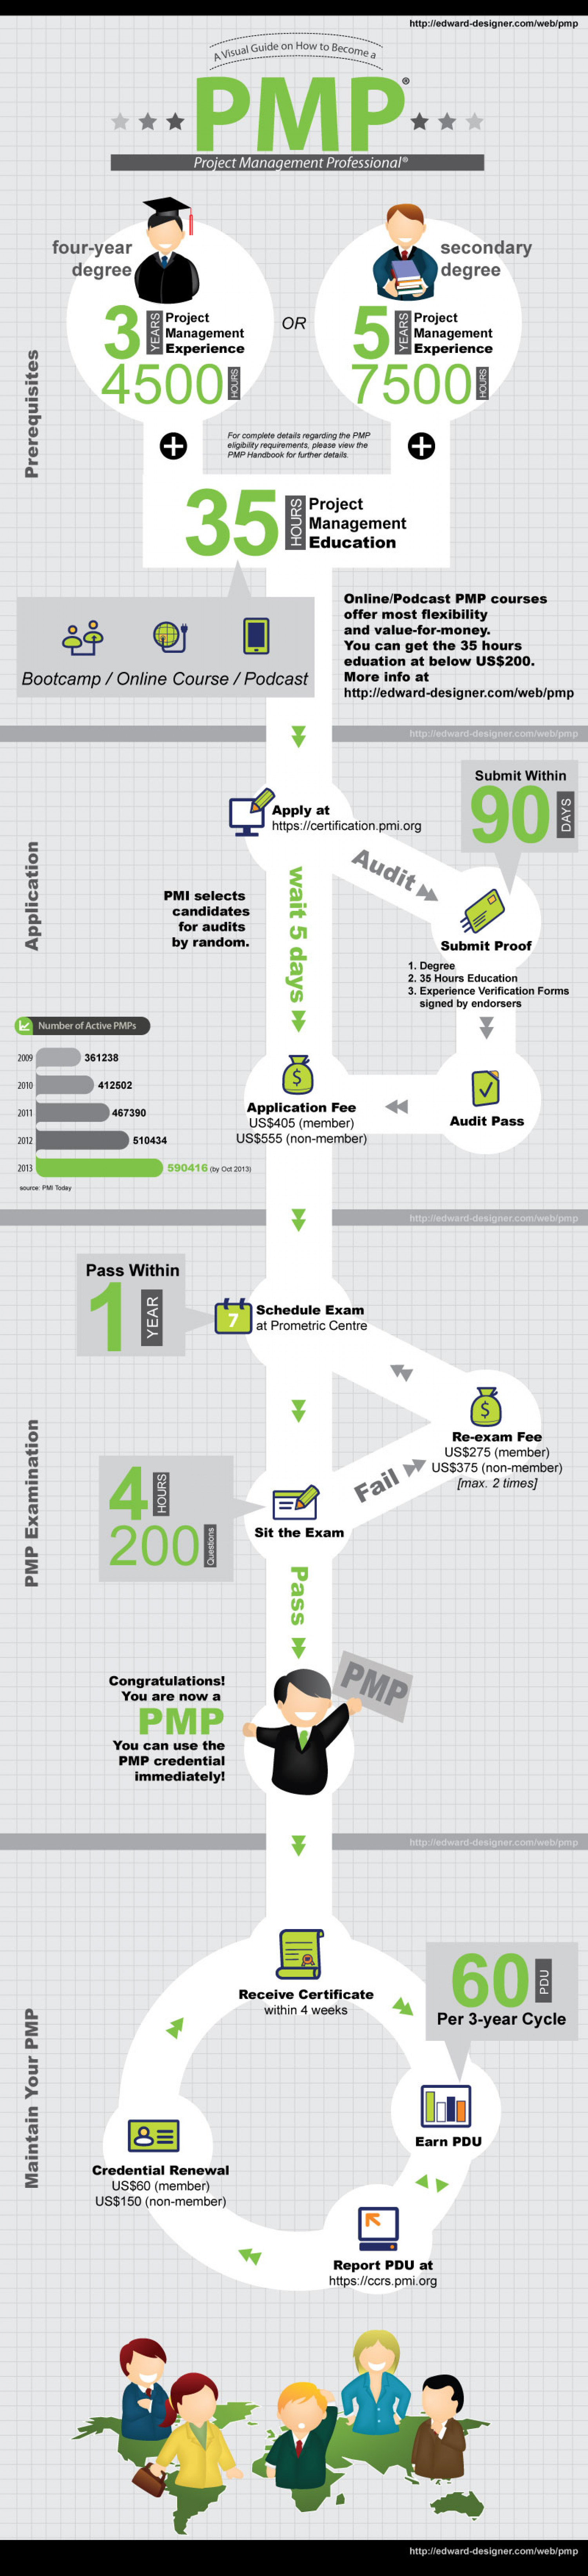 A Visual Guide on How to Become a PMP Infographic